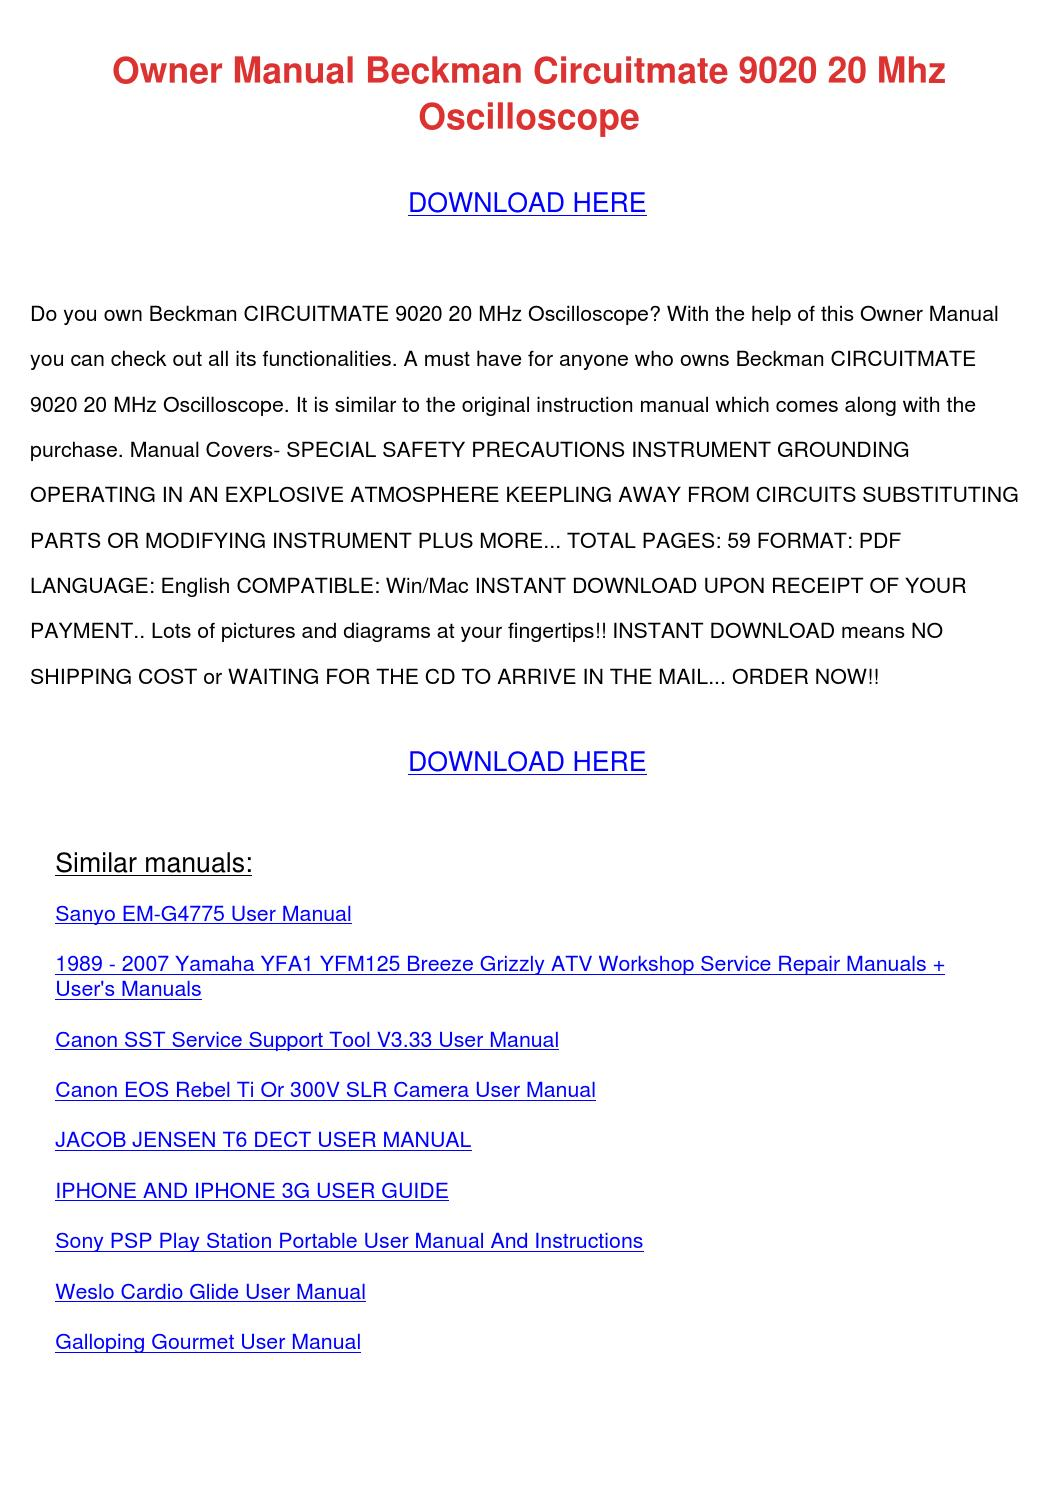 Owner Manual Beckman Circuitmate 9020 20 Mhz by EvelynDow - issuu